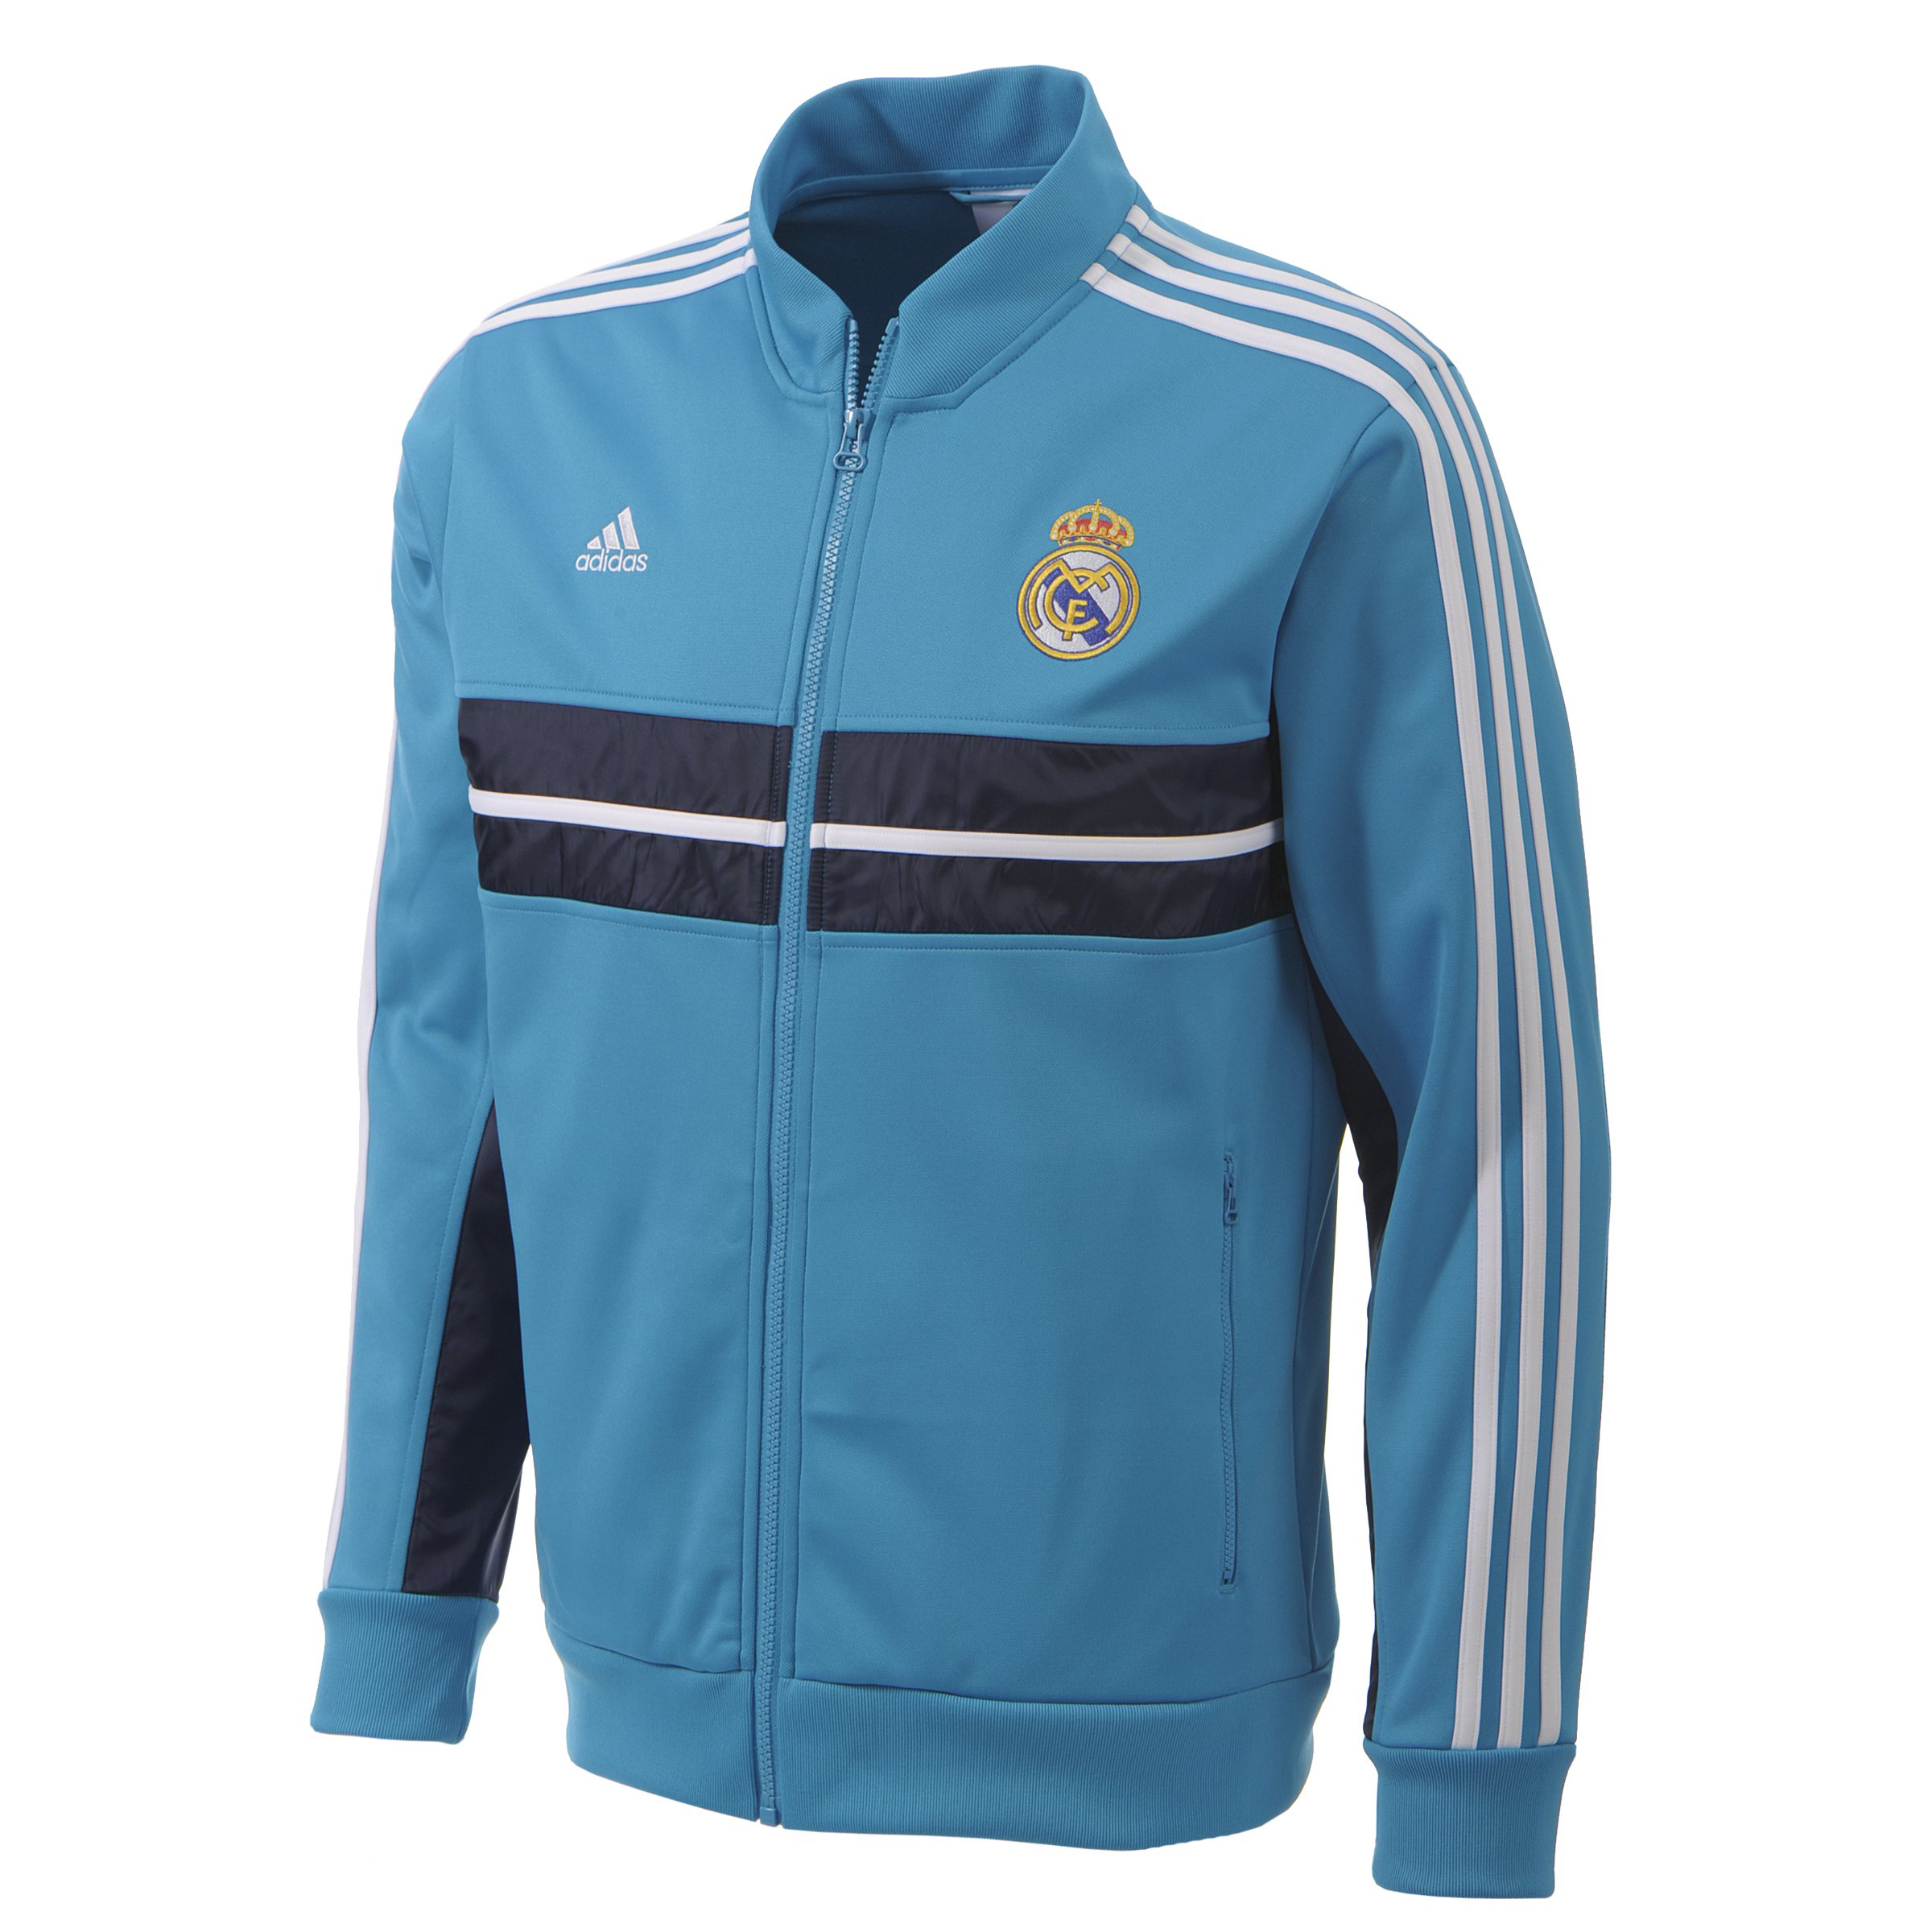 Real Madrid Anthem Jacket - Turquoise - Kids